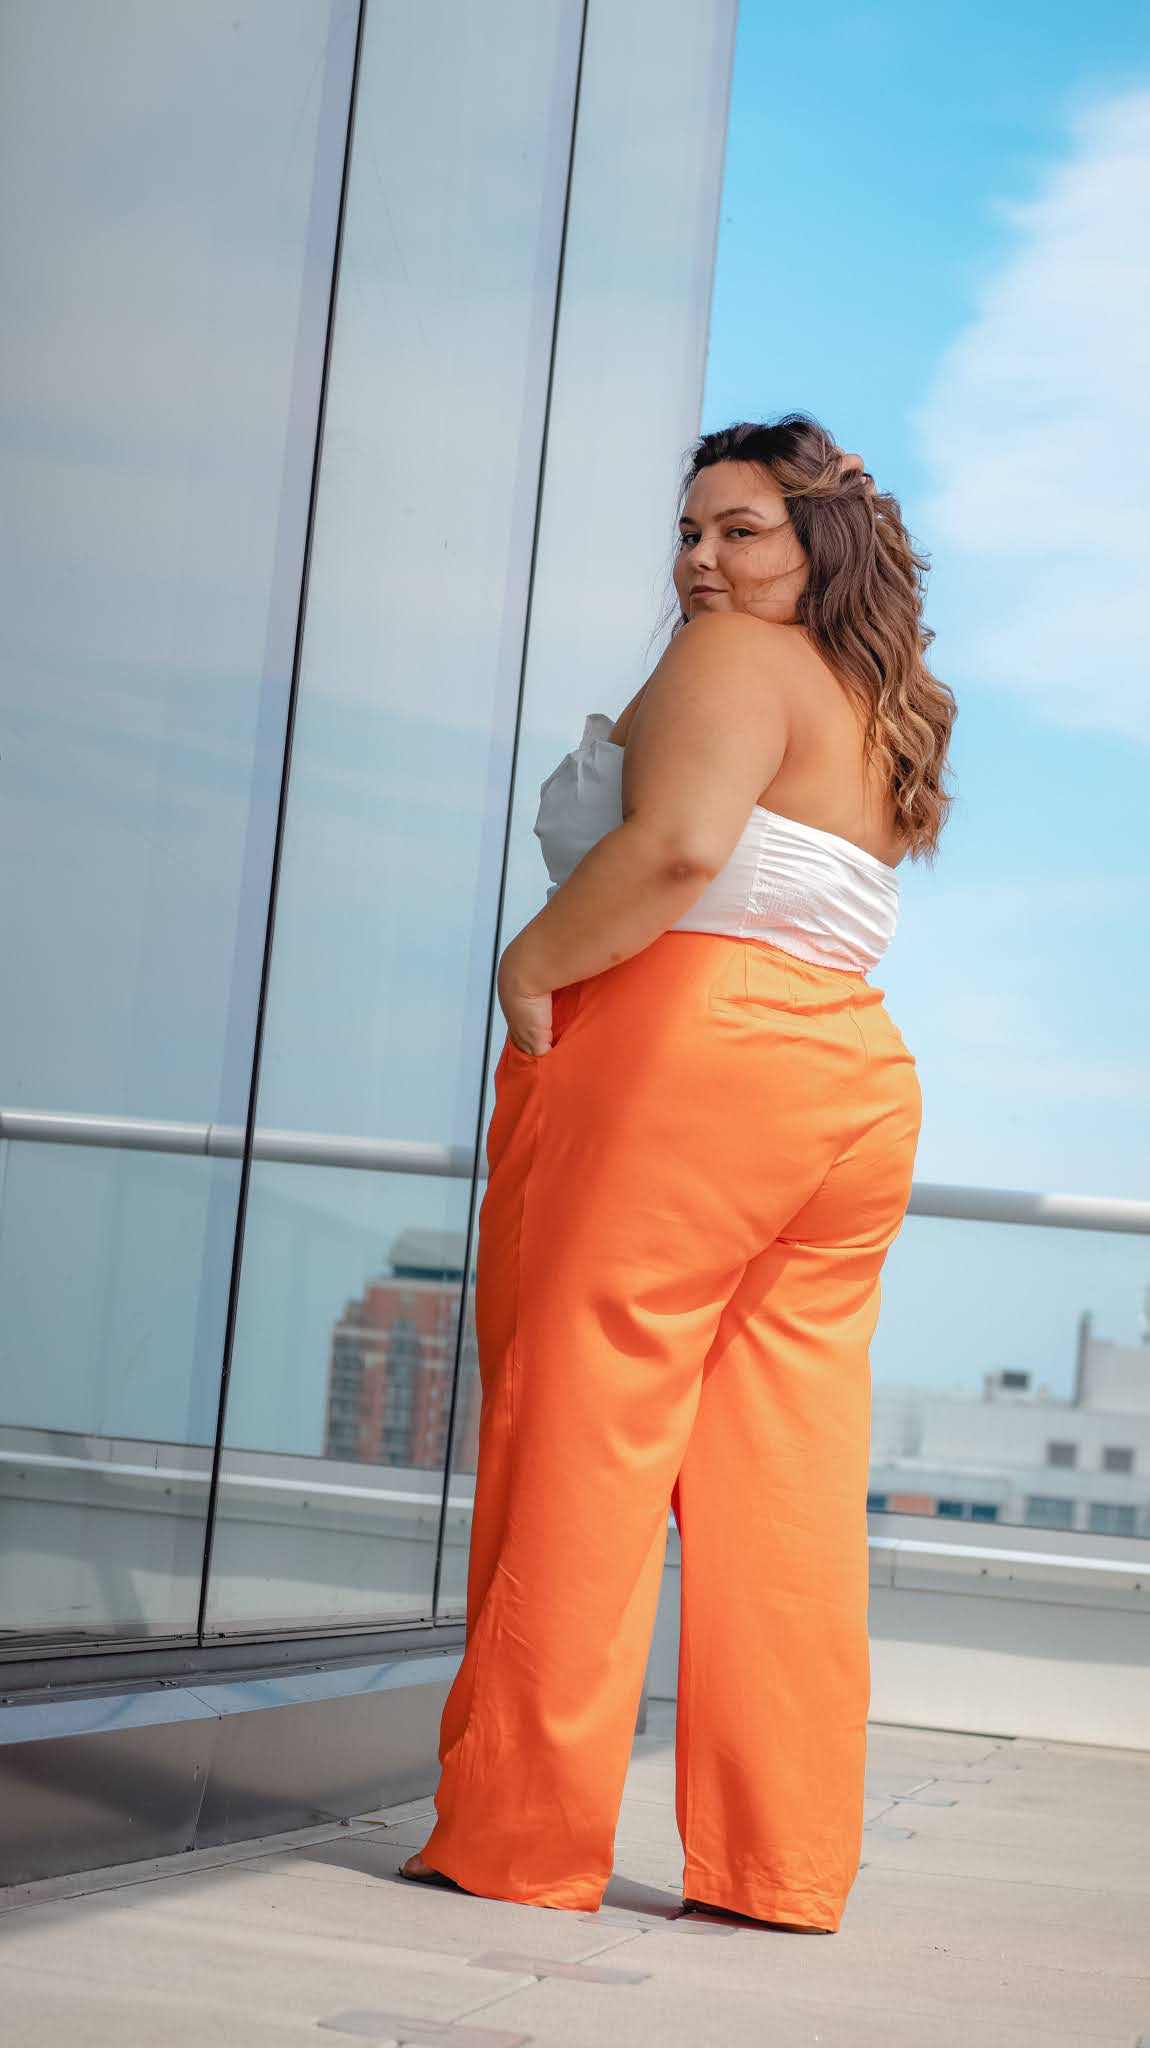 plus size and petite blogger and model Natalie in the City reviews wide leg pants she's wearing from Eloquii.